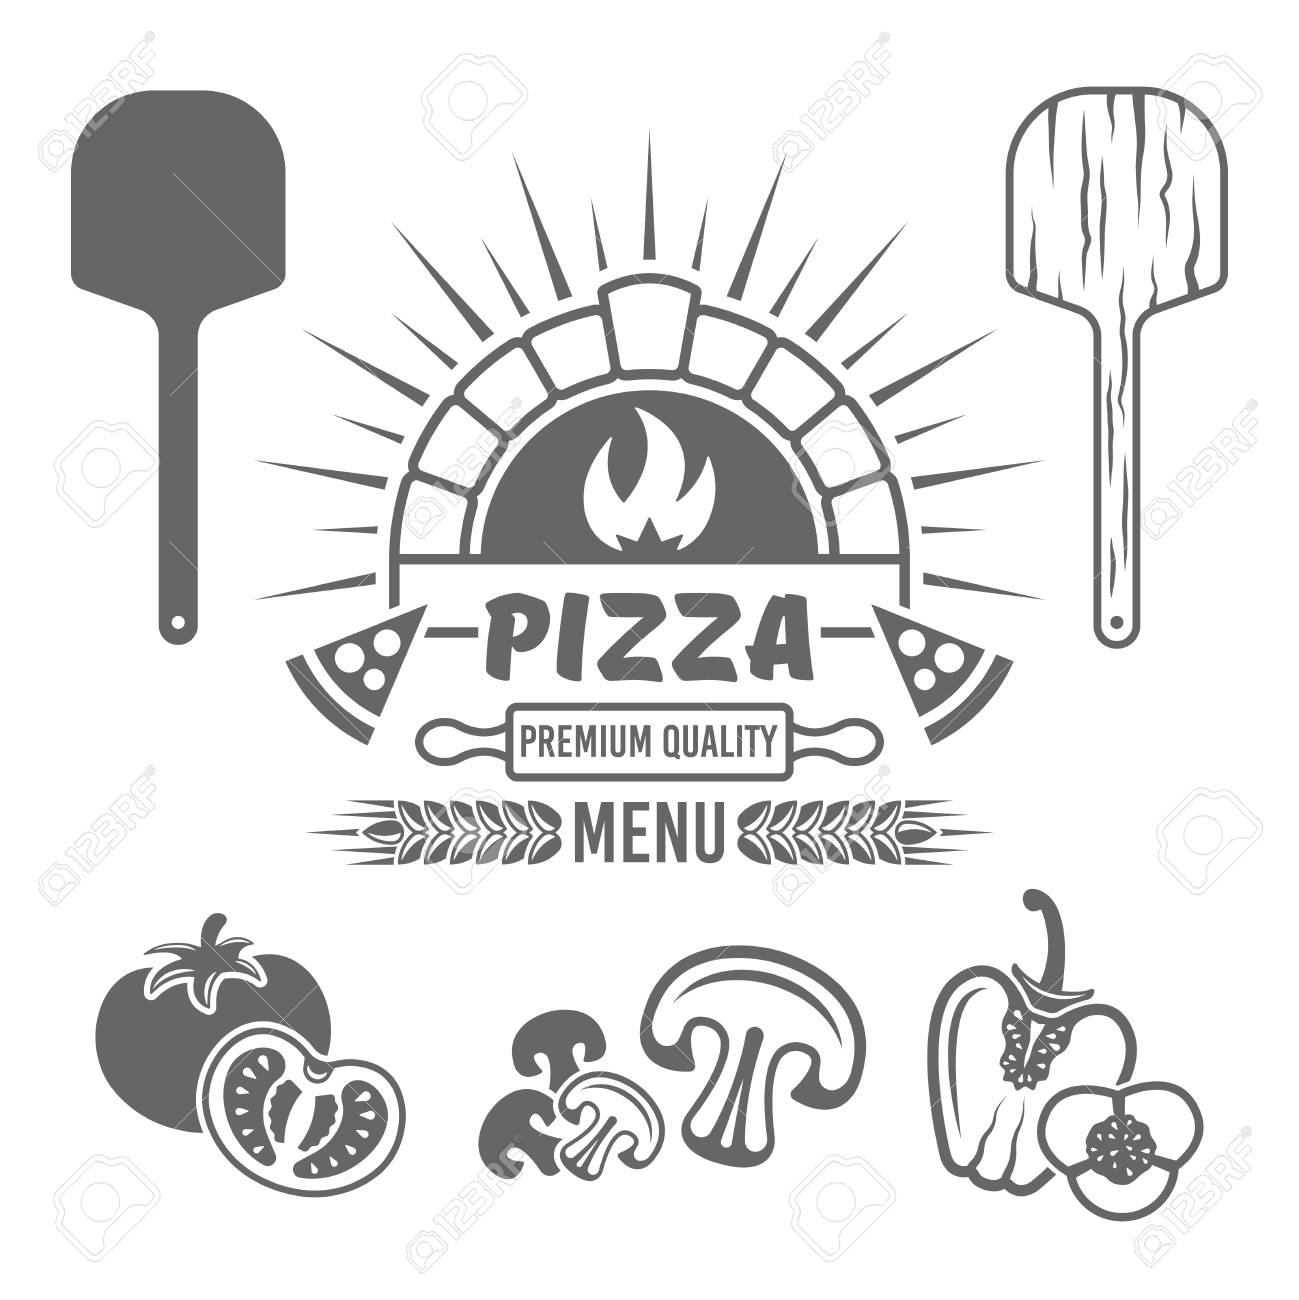 Brick oven and pizza vector monochrome emblem or label for pizzeria menu, and design elements tomato, mushrooms, bell pepper, wooden shovel isolated on white background - 105622195